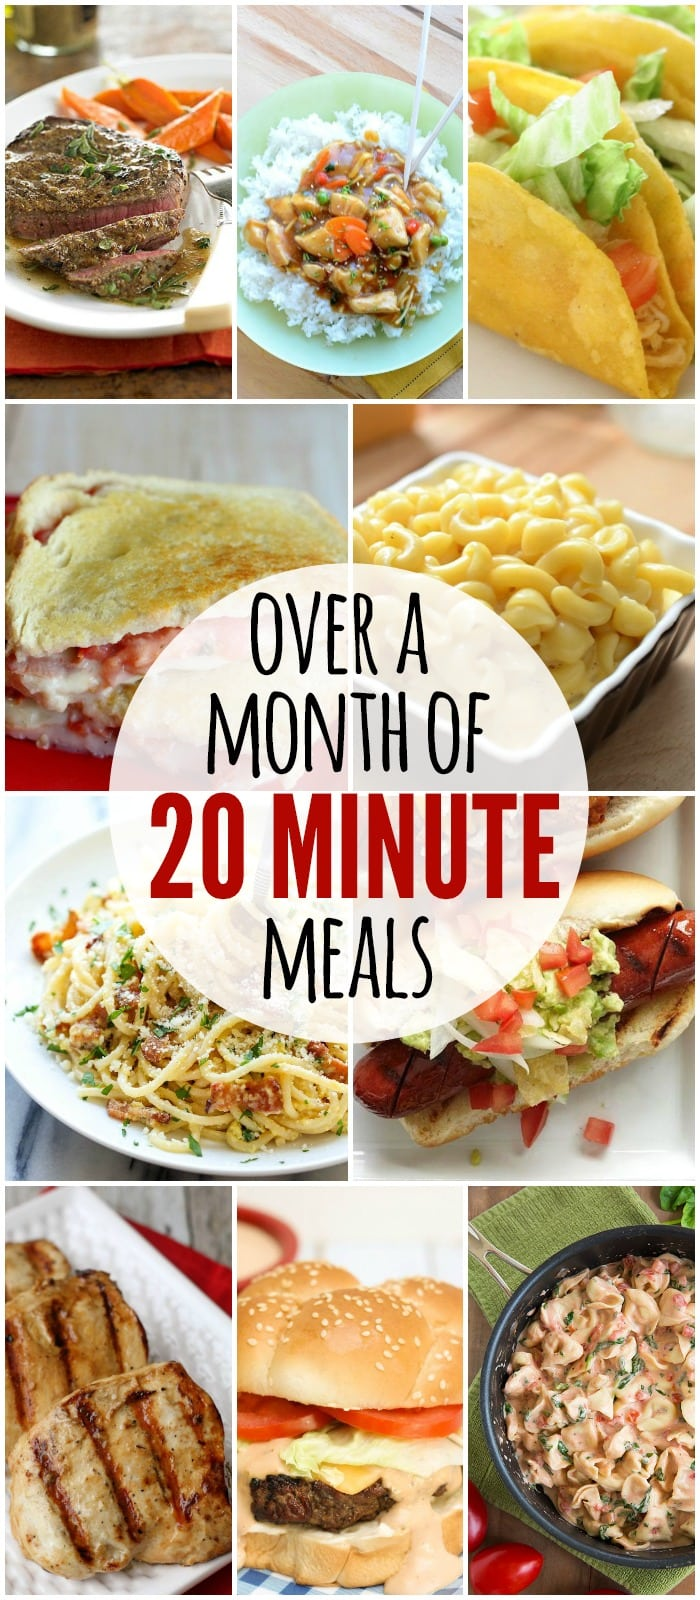 Over a month worth of meals that only take 20 minutes or less to prepare! Check it out on { lilluna.com } Pastas, tacos, sandwiches and more!!